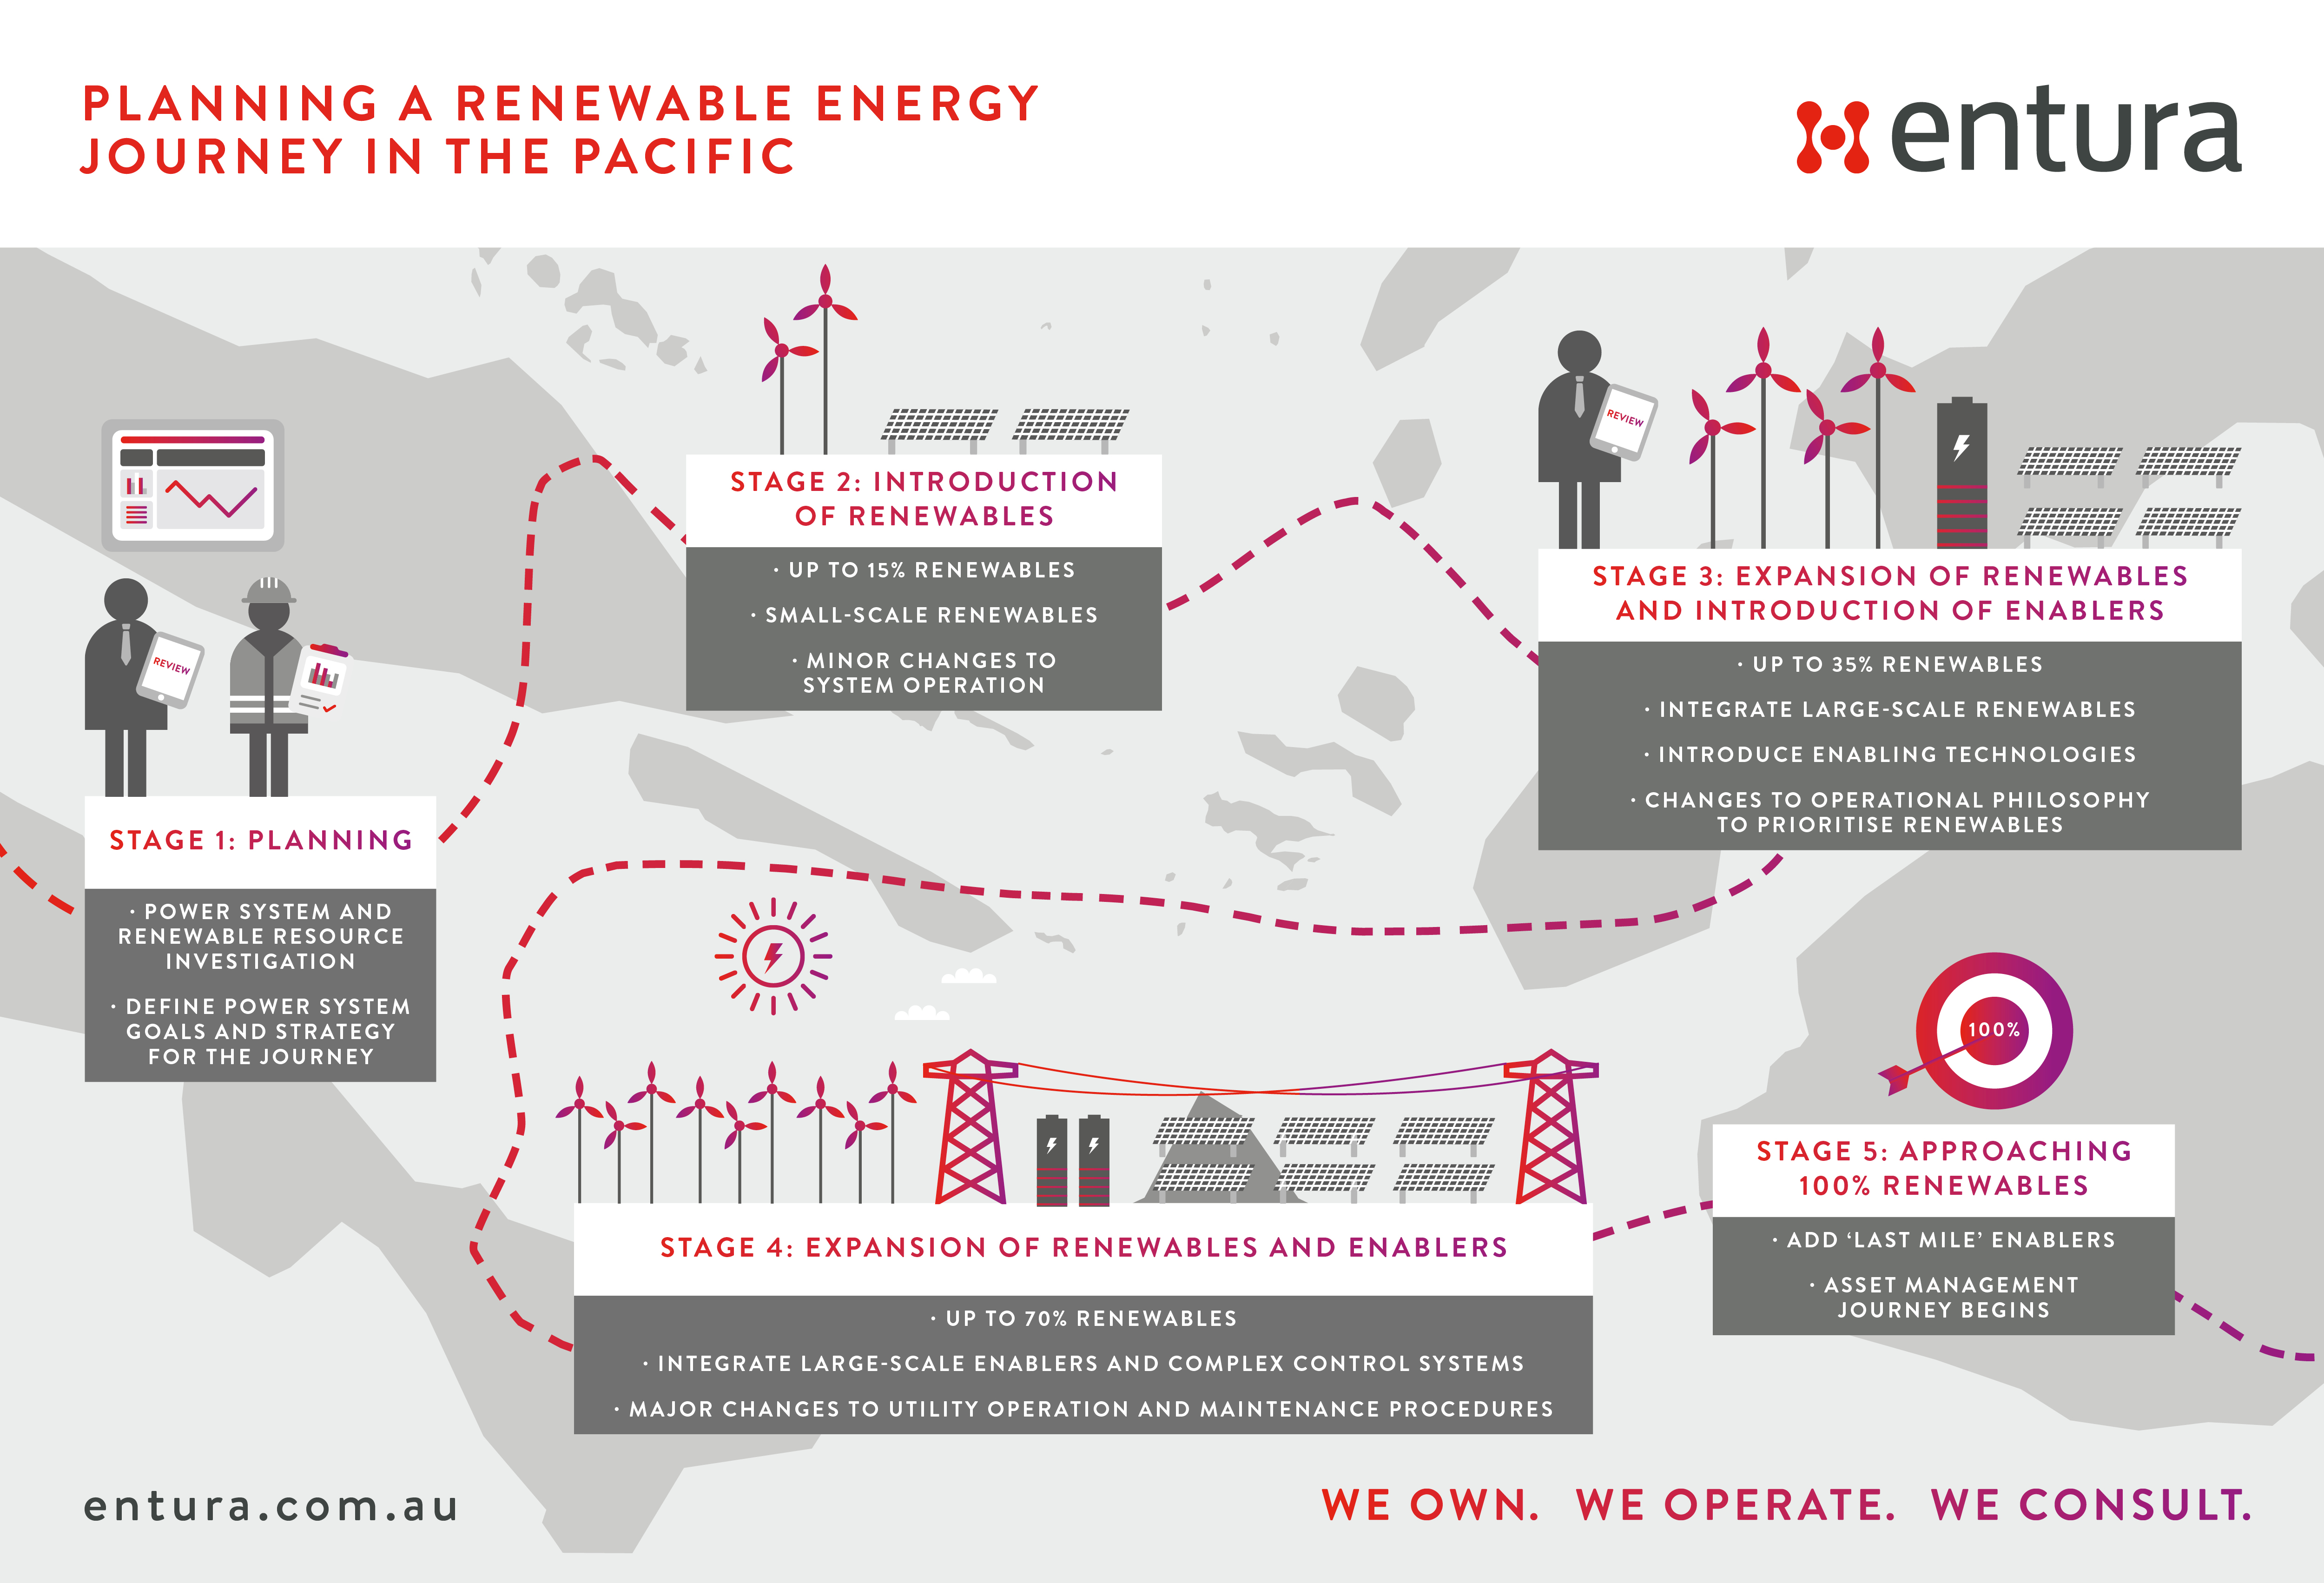 Planning a renewable energy journey in the Pacific | Entura